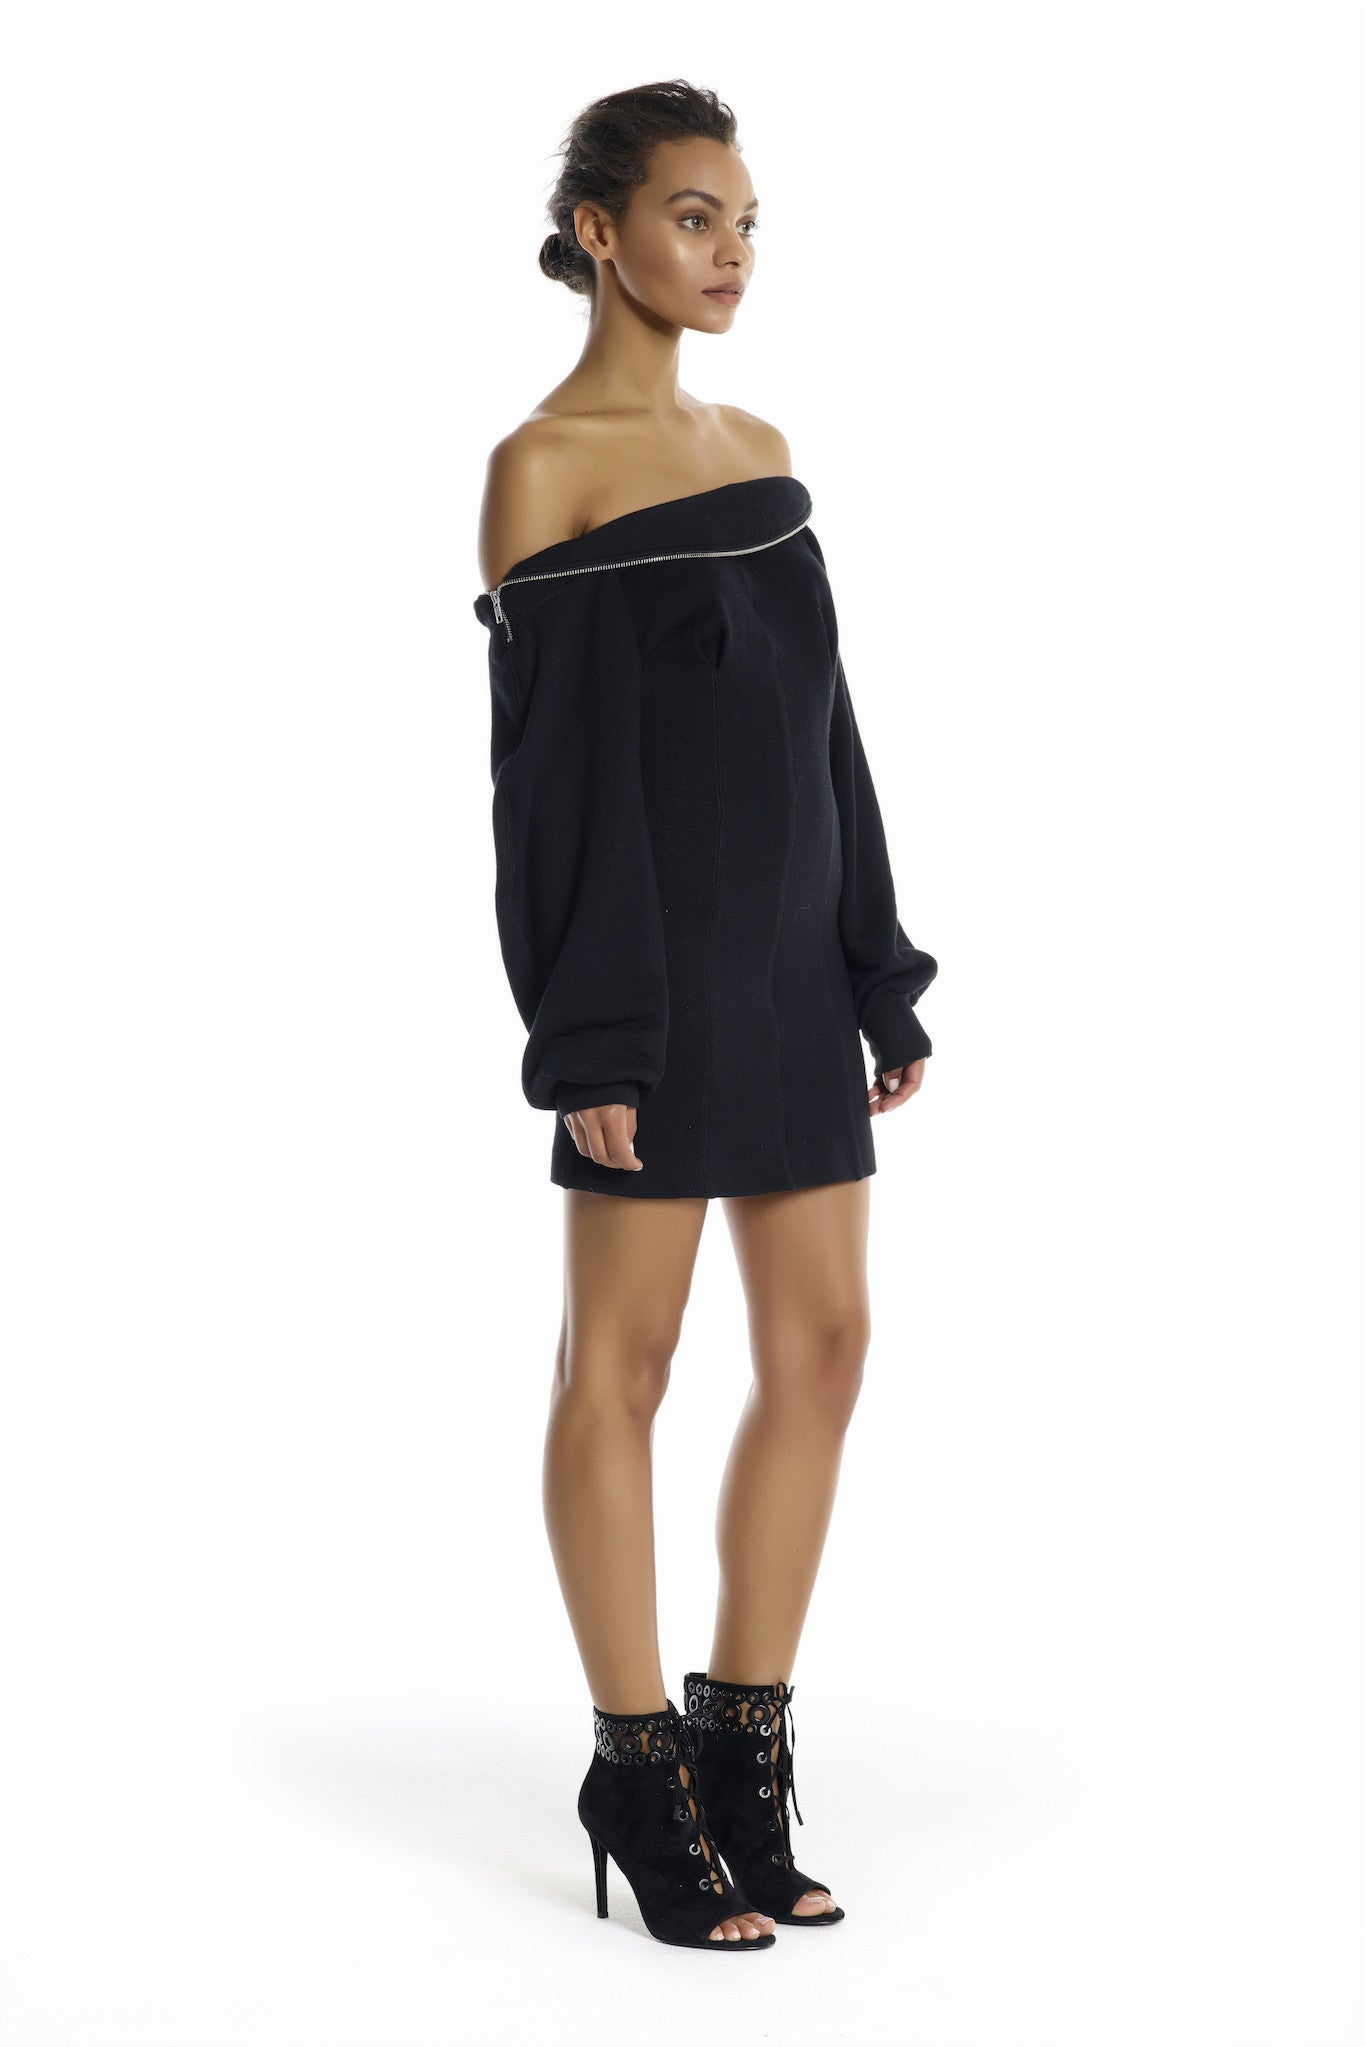 OFF-SHOULDER SWEATERSHIRT DRESS DRESSES by KENDALL + KYLIE